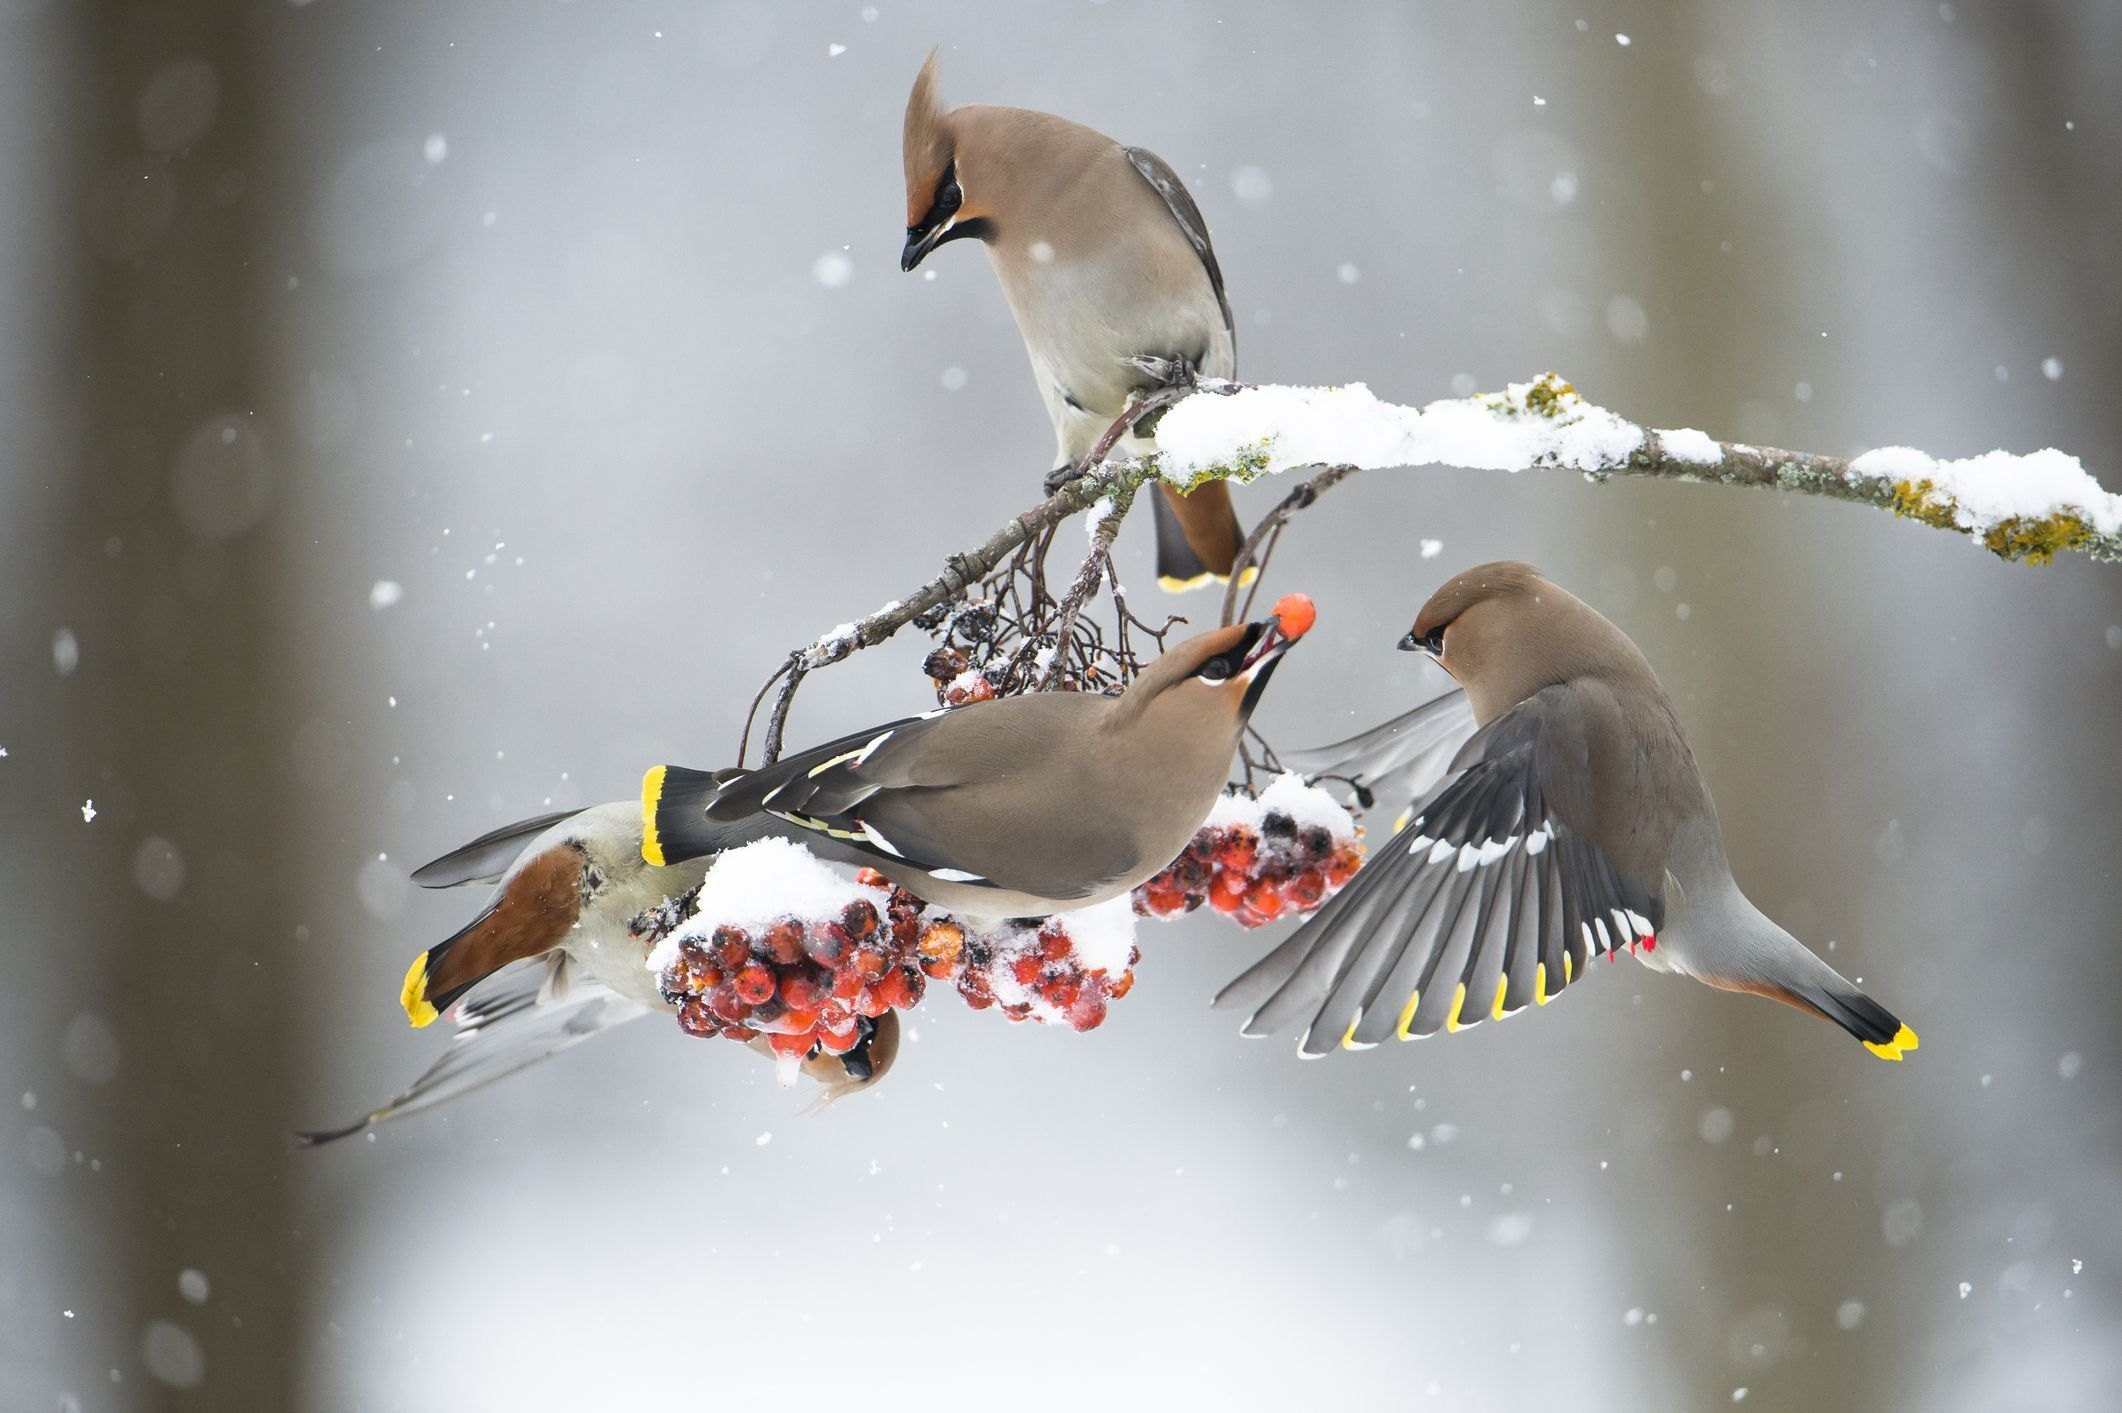 Cedar waxwings enjoy a buffet of berries in Minnesota. The sociable birds are often seen in groups, and will pass berries back and forth to each other before one decides to eat it.